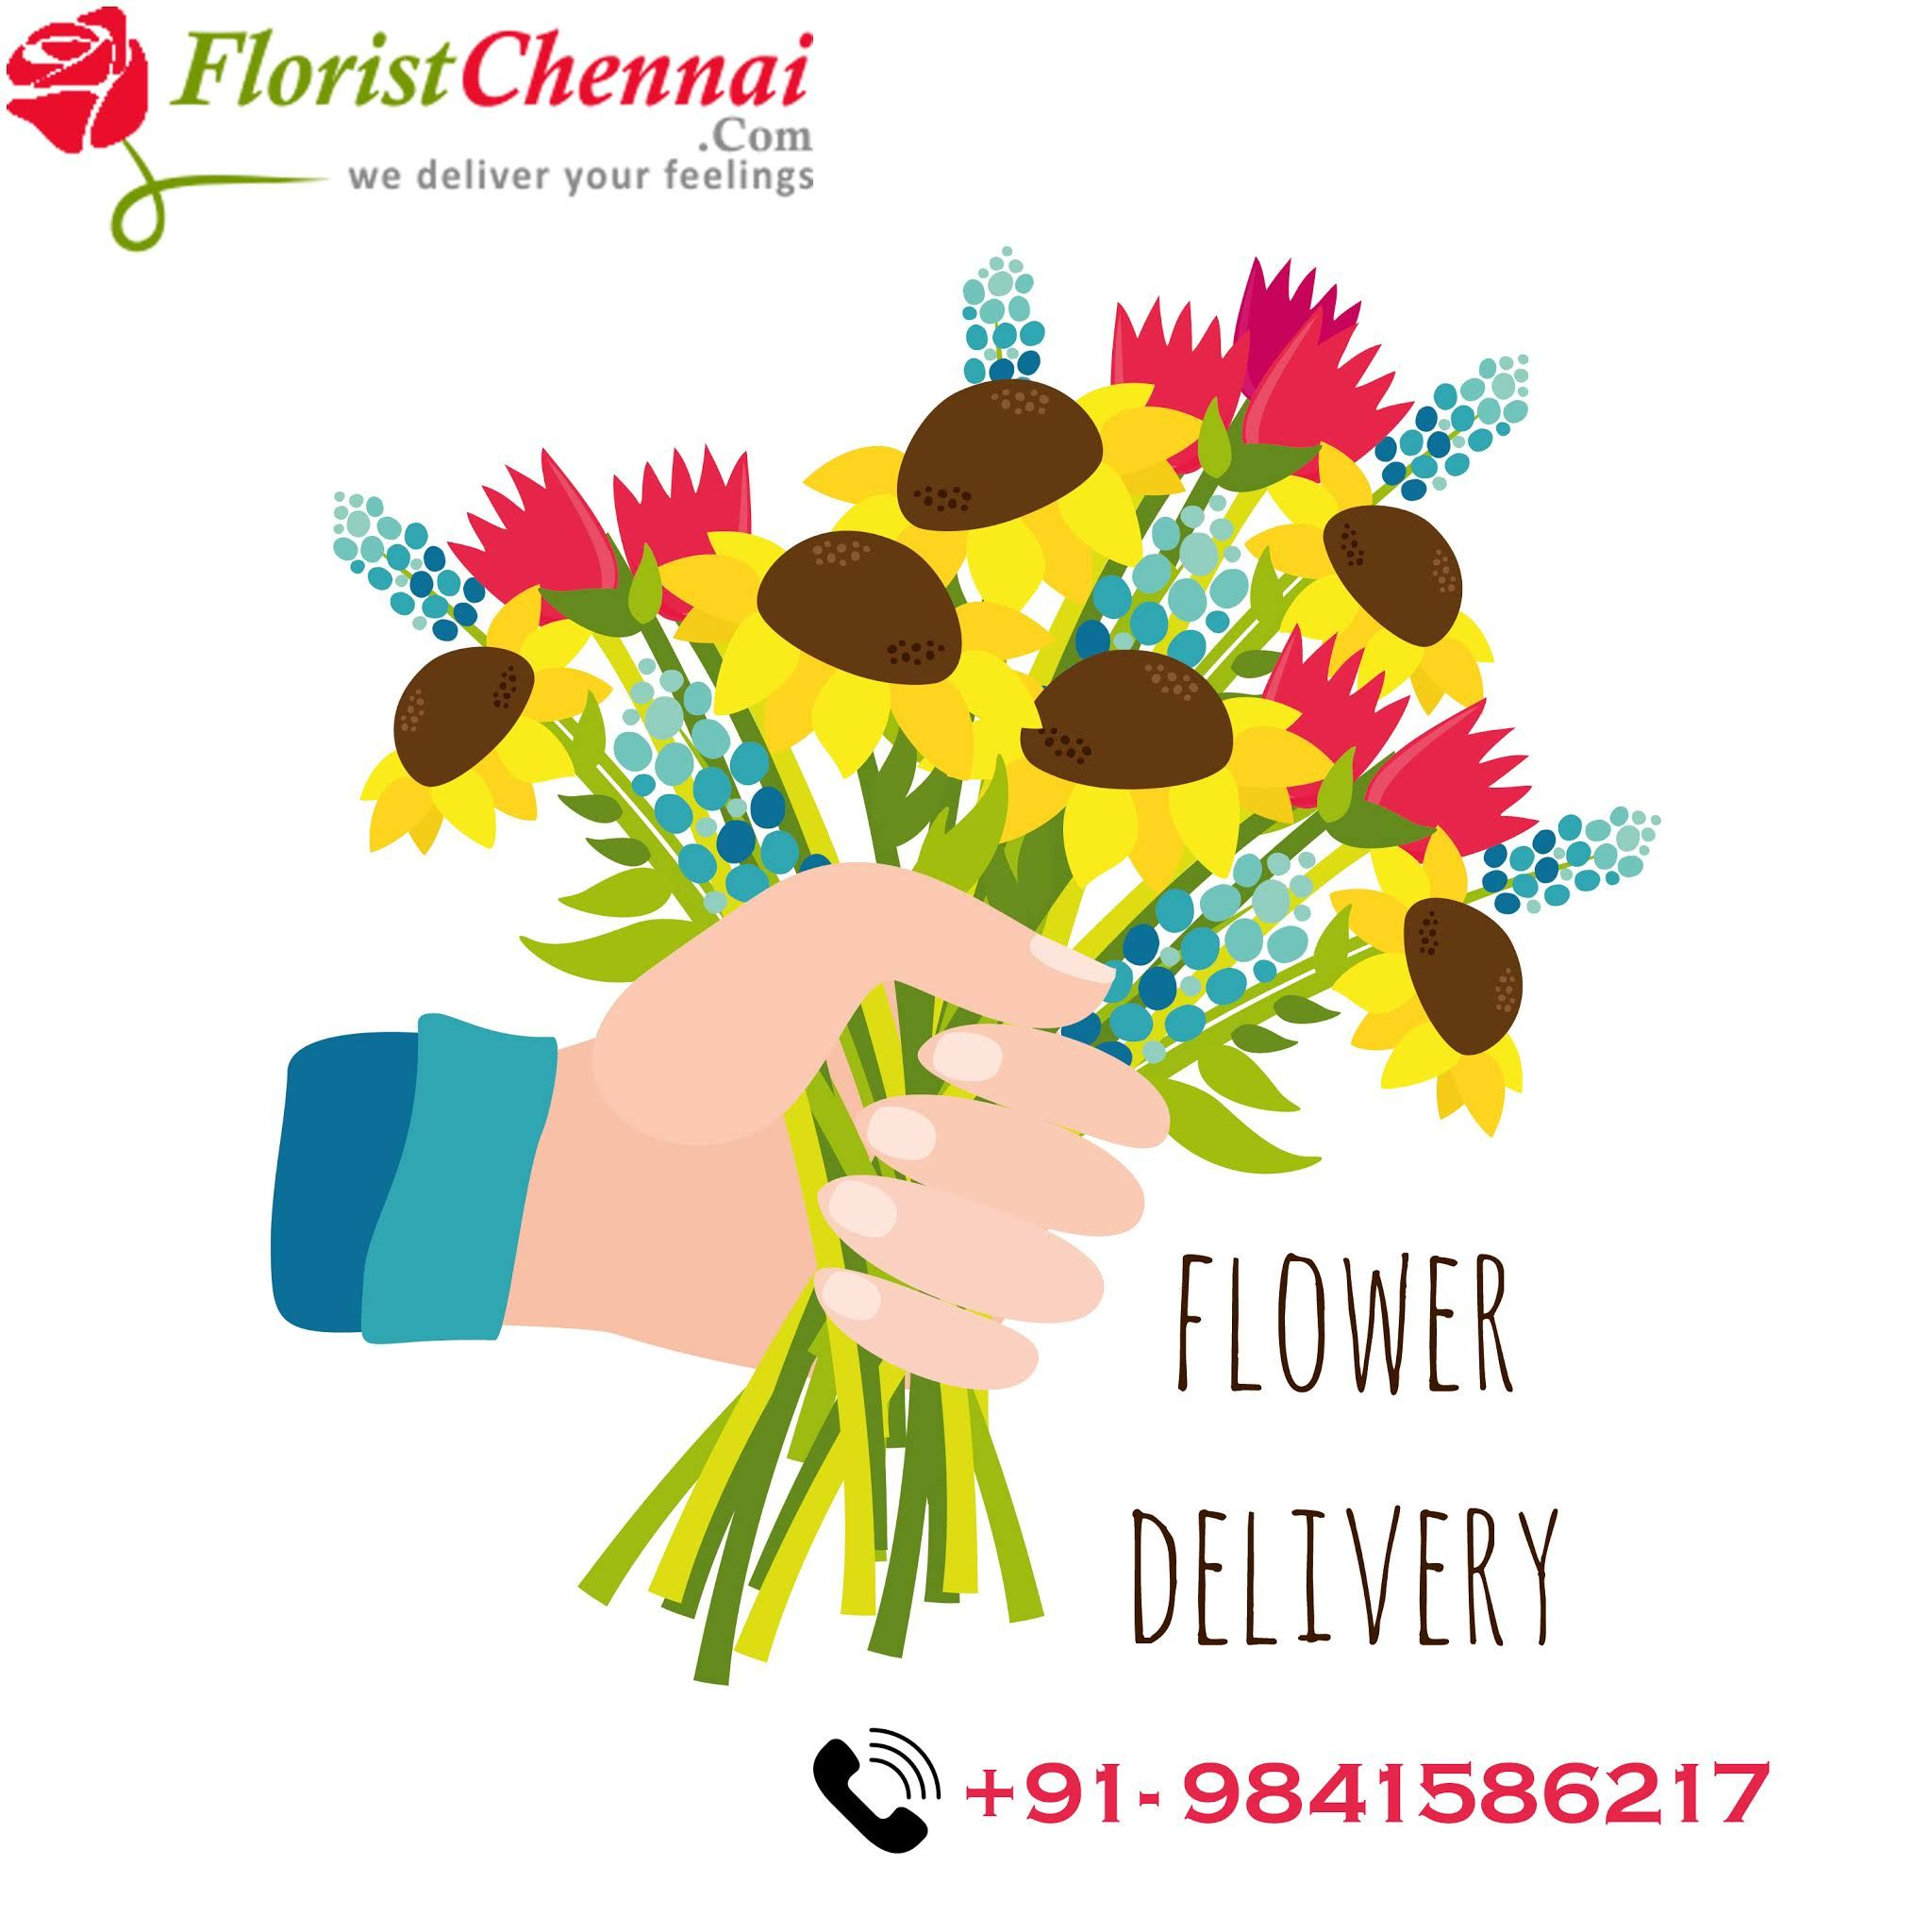 Pin by floristchennai chennai on Floristchennai Flower